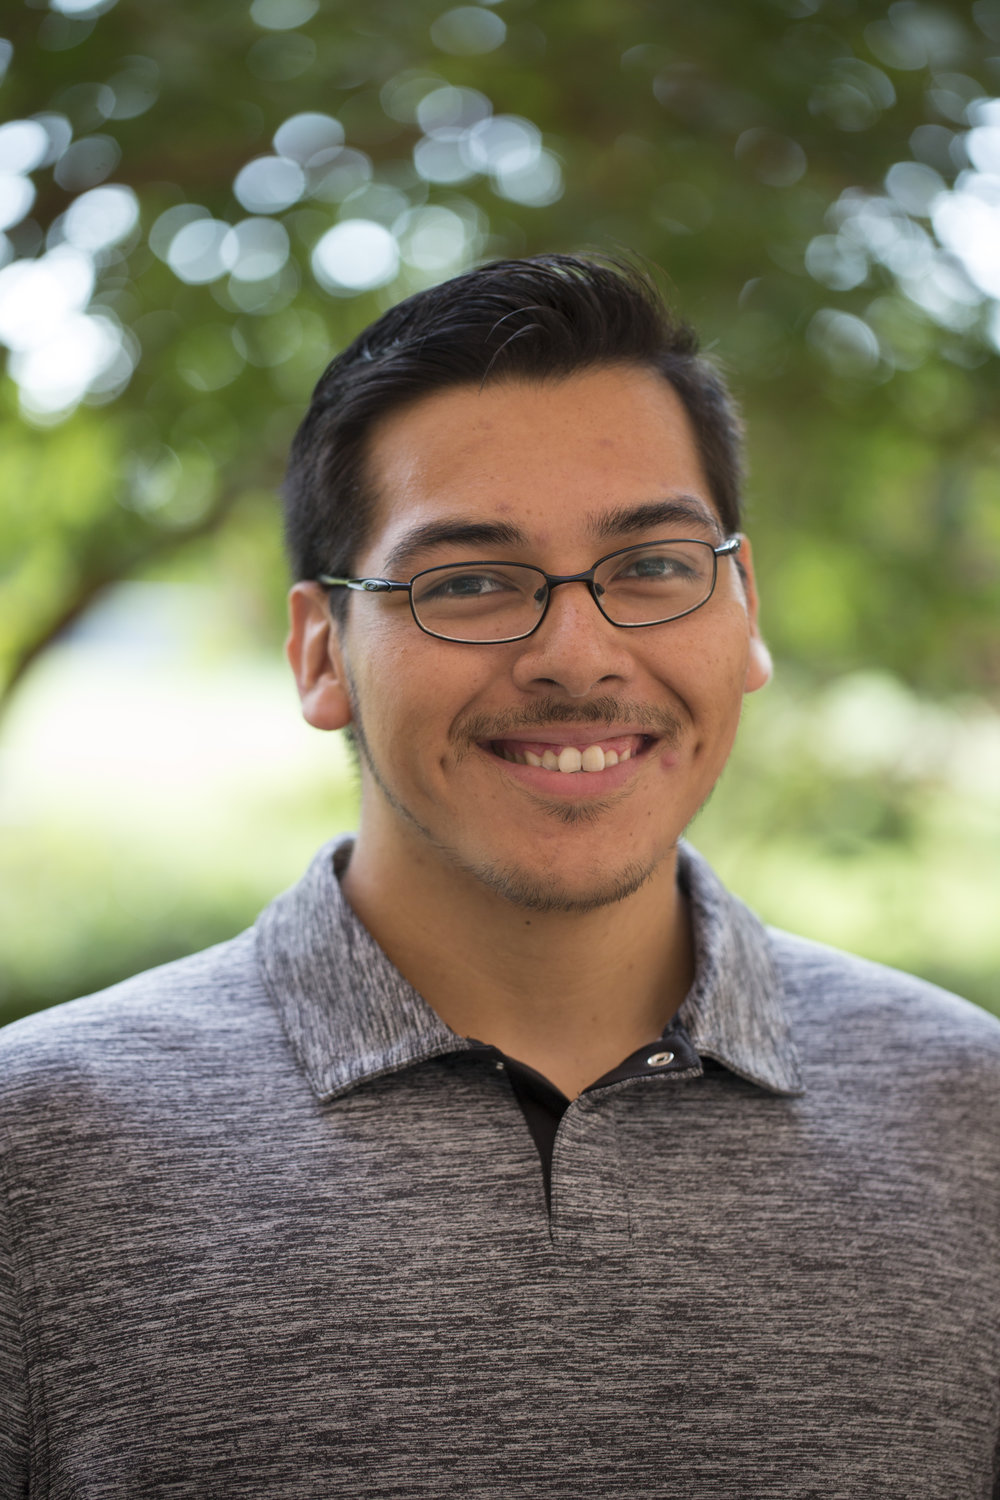 Henry Lujan Jr., B.S. Second-Year Ph.D. Candidate Expected Graduation Date: May 2020 Henry_Lujan@baylor.edu LinkedIn